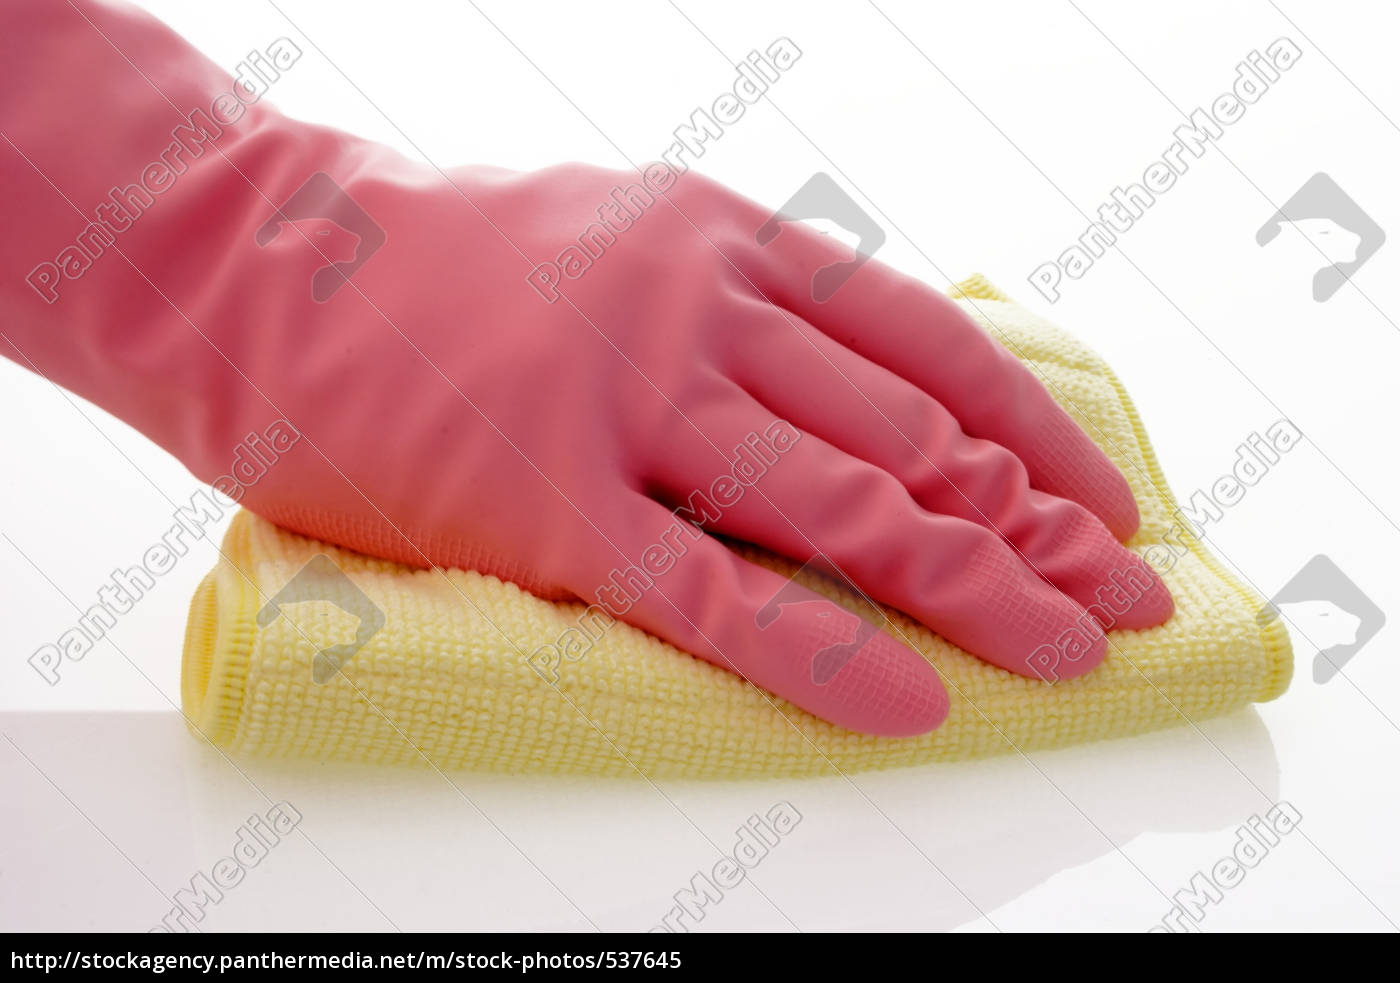 rubber, gloves - 537645